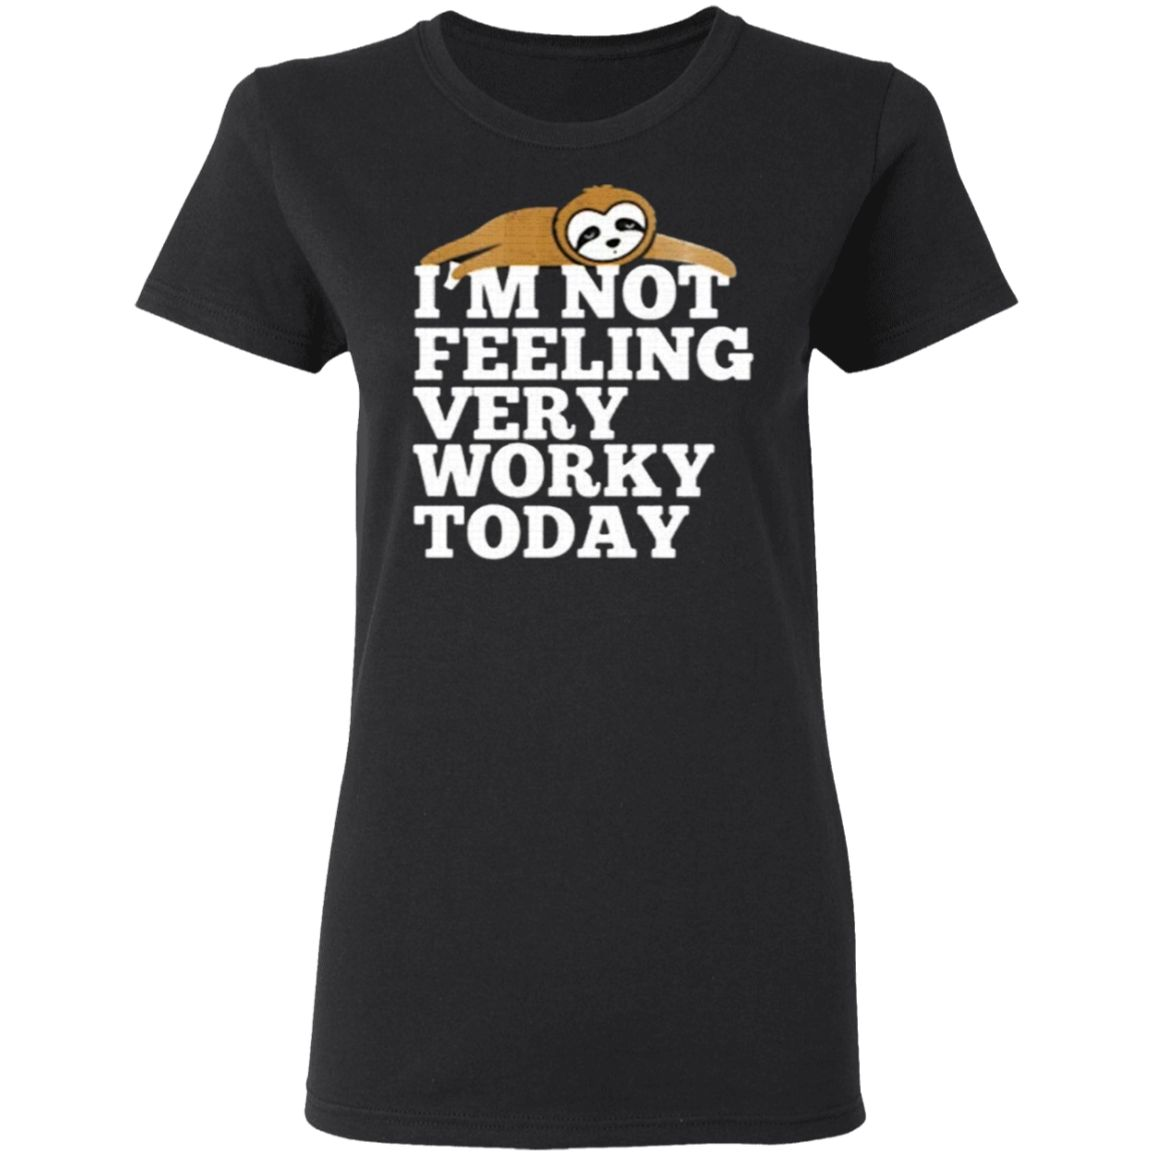 I'm Not Feeling Very Worky Today T-Shirt